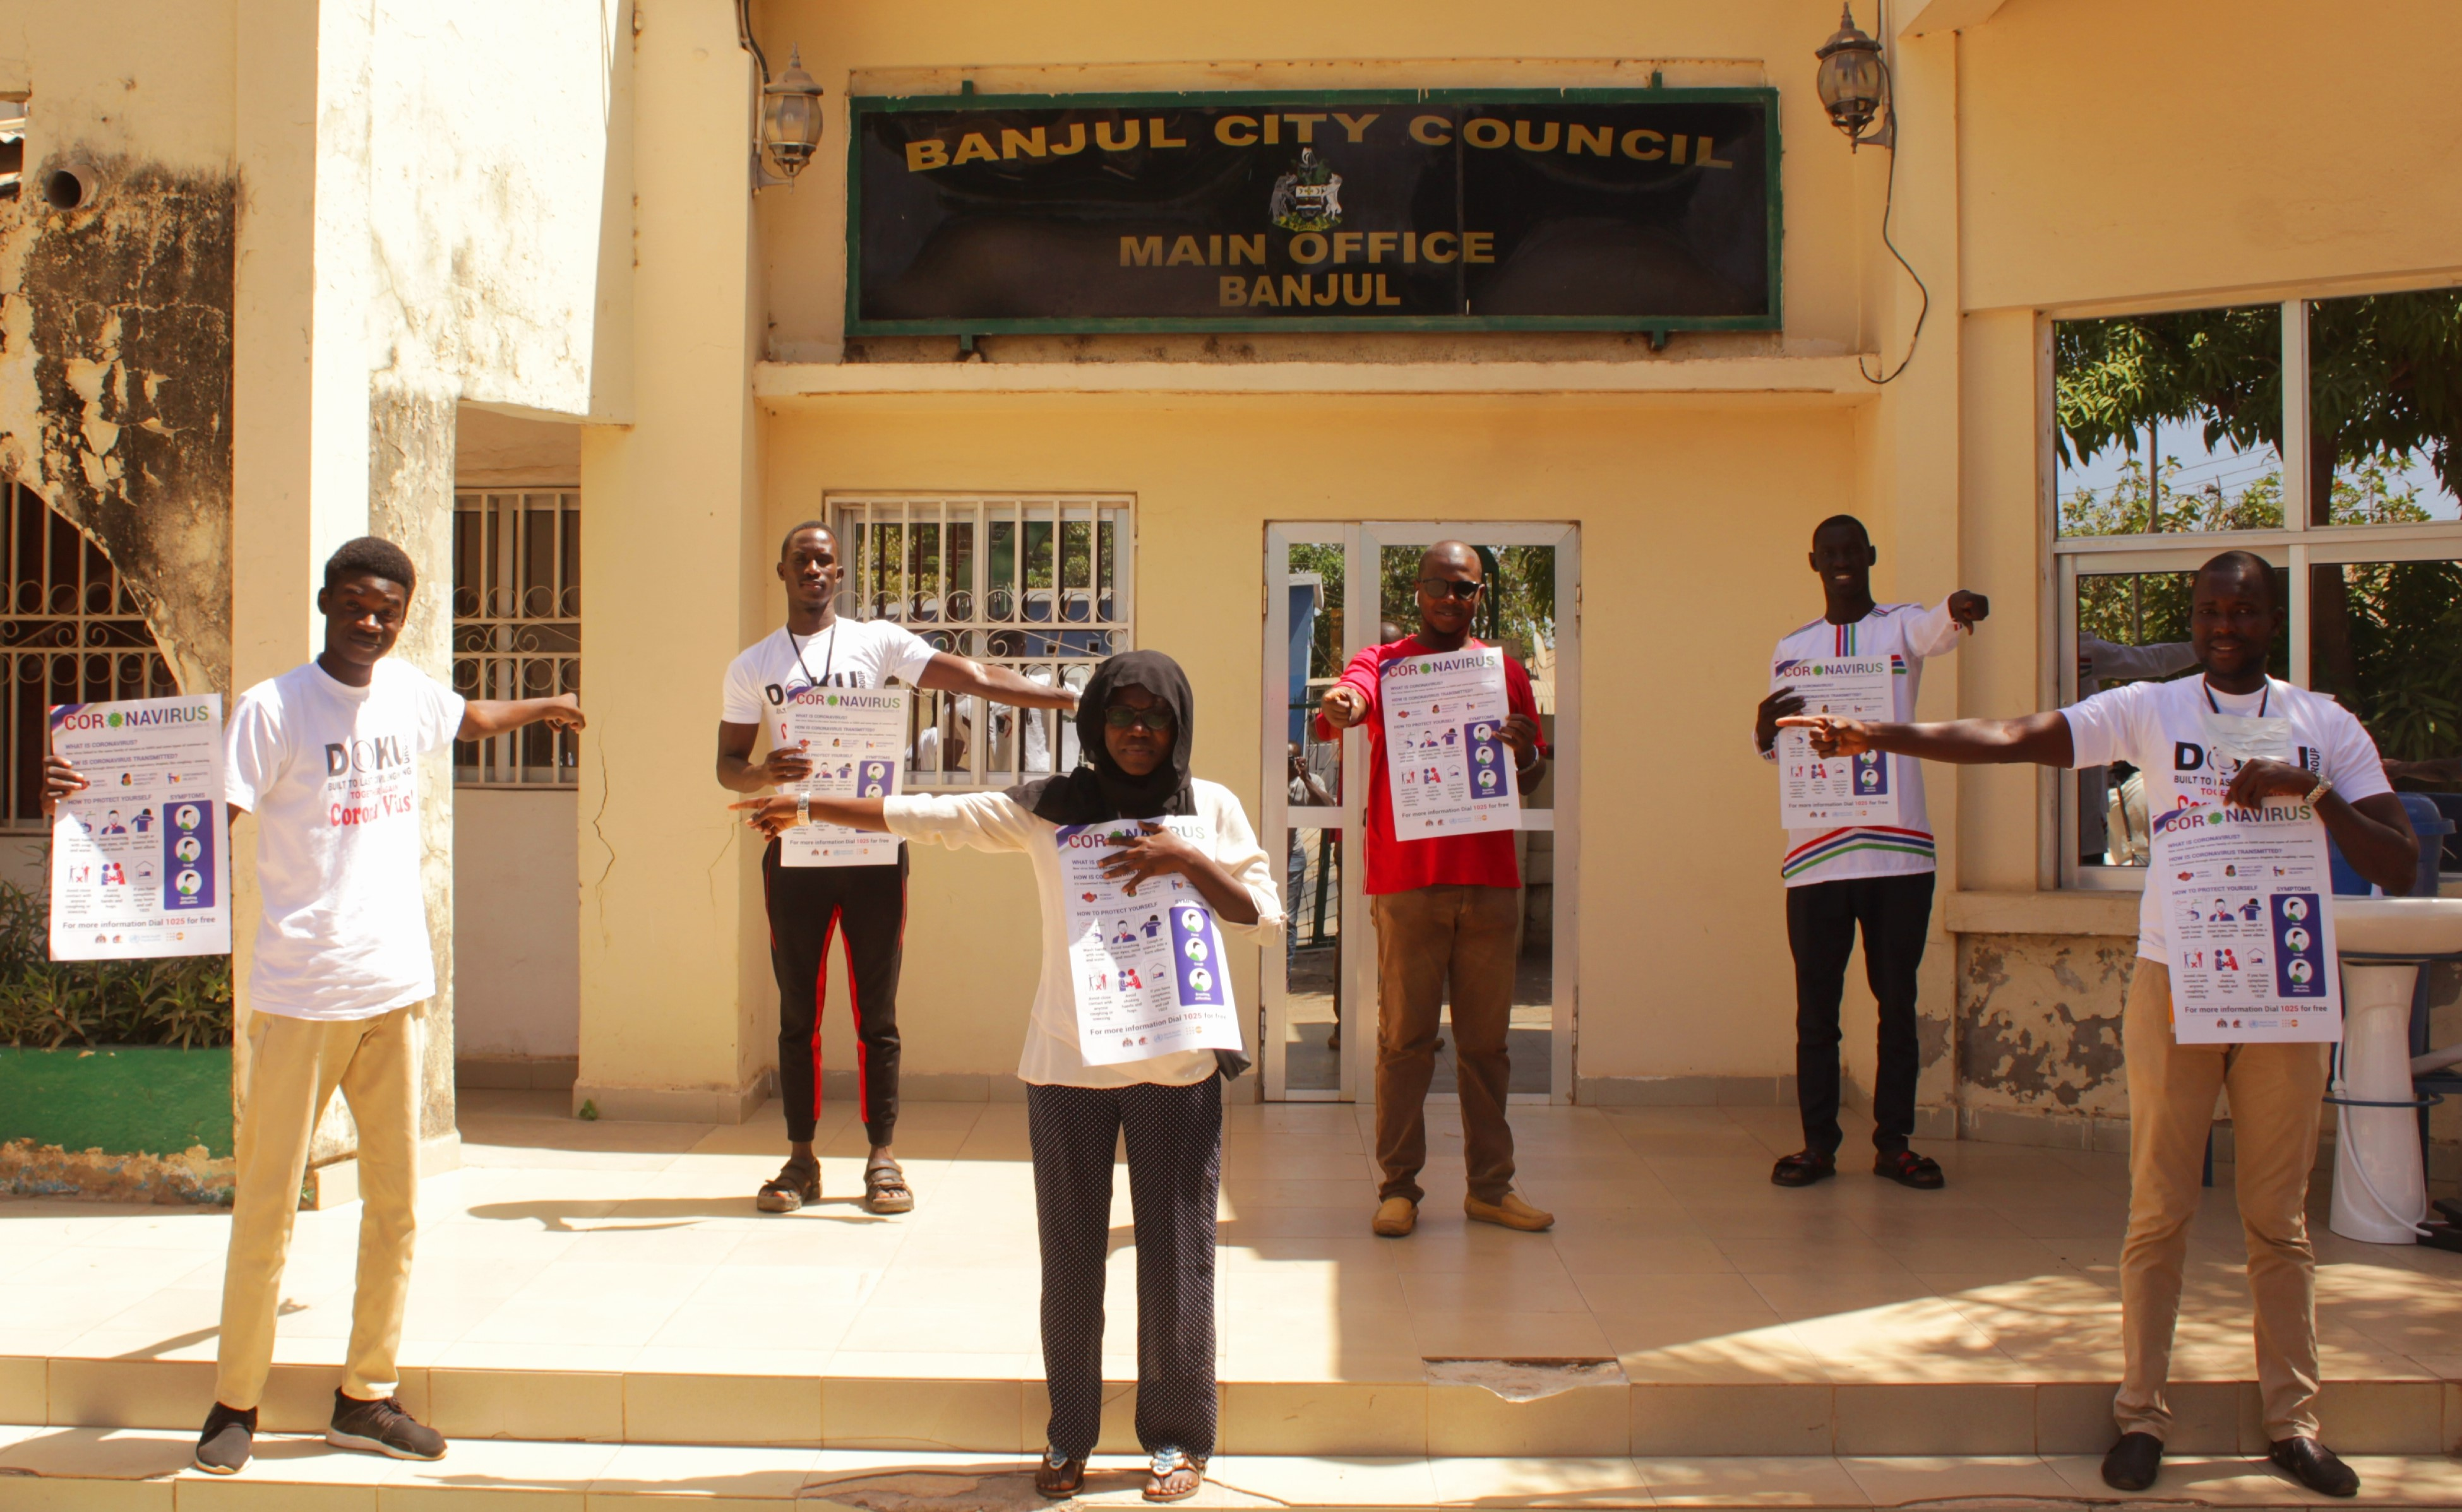 Young people of Banjul demonstrating social distancing at the Banjul City Council grounds